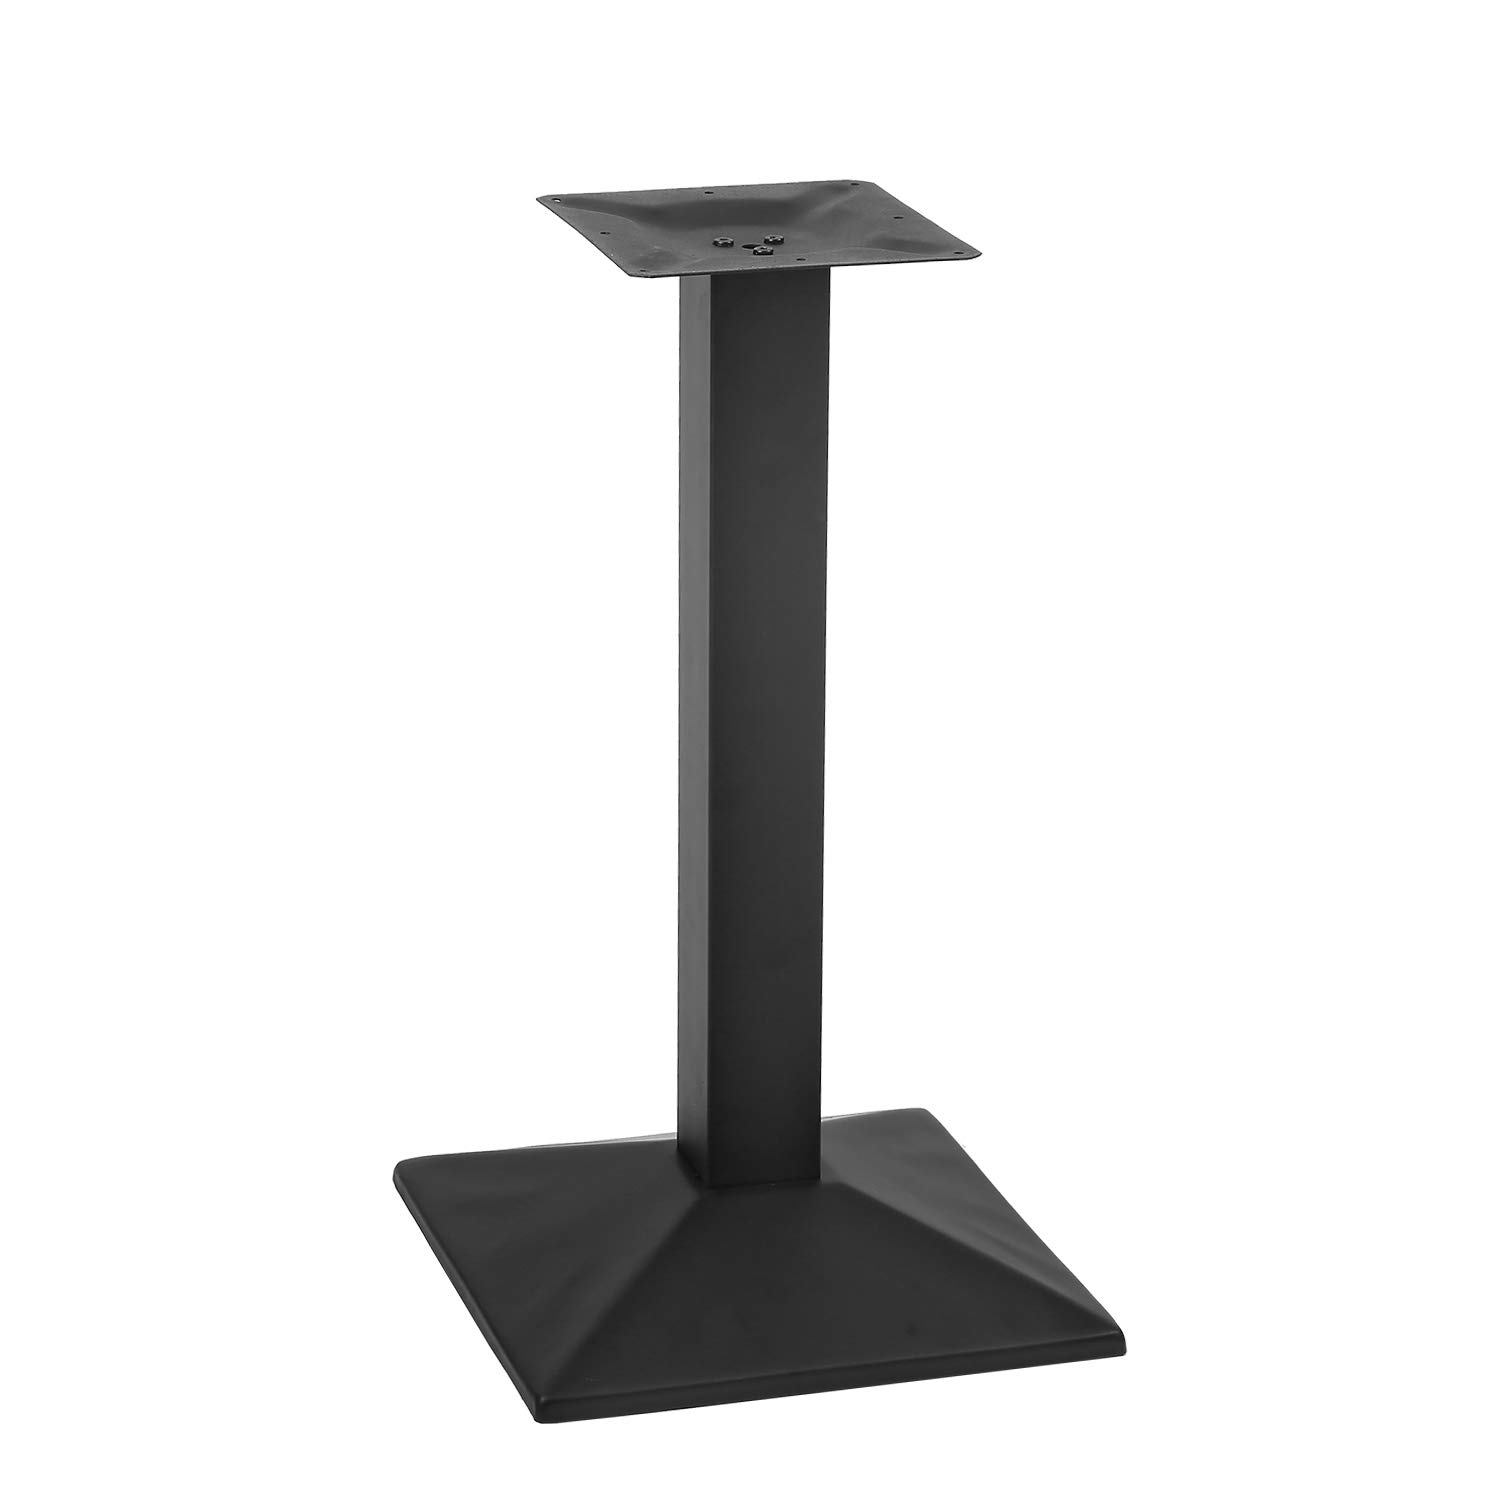 MBQQ Industrial 15.7'' x 15.7'' Square Restaurant Table Base with 3'' Side Length Square Columns,28''Height Furniture Legs by MBQQ